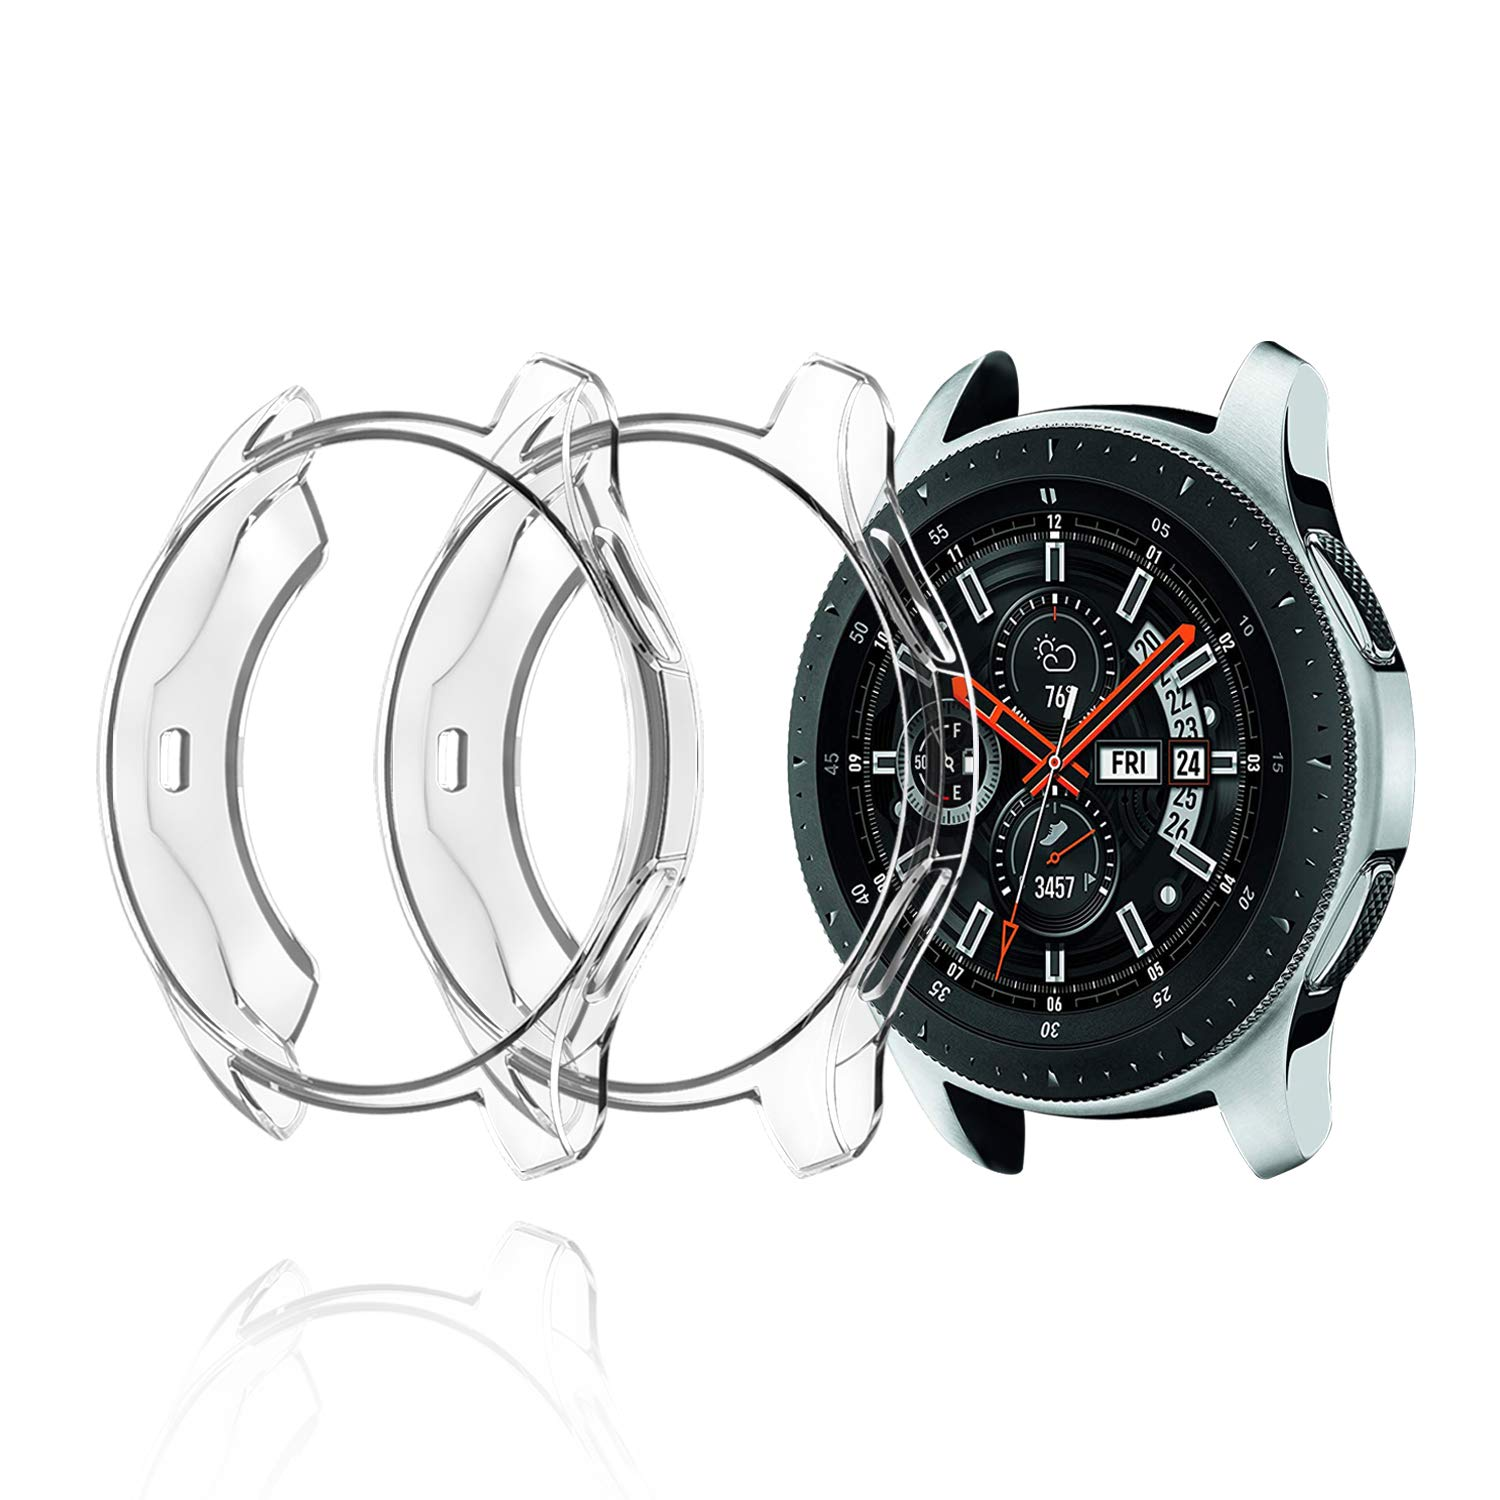 2 fundas transparentes para Samsung Watch 46mm